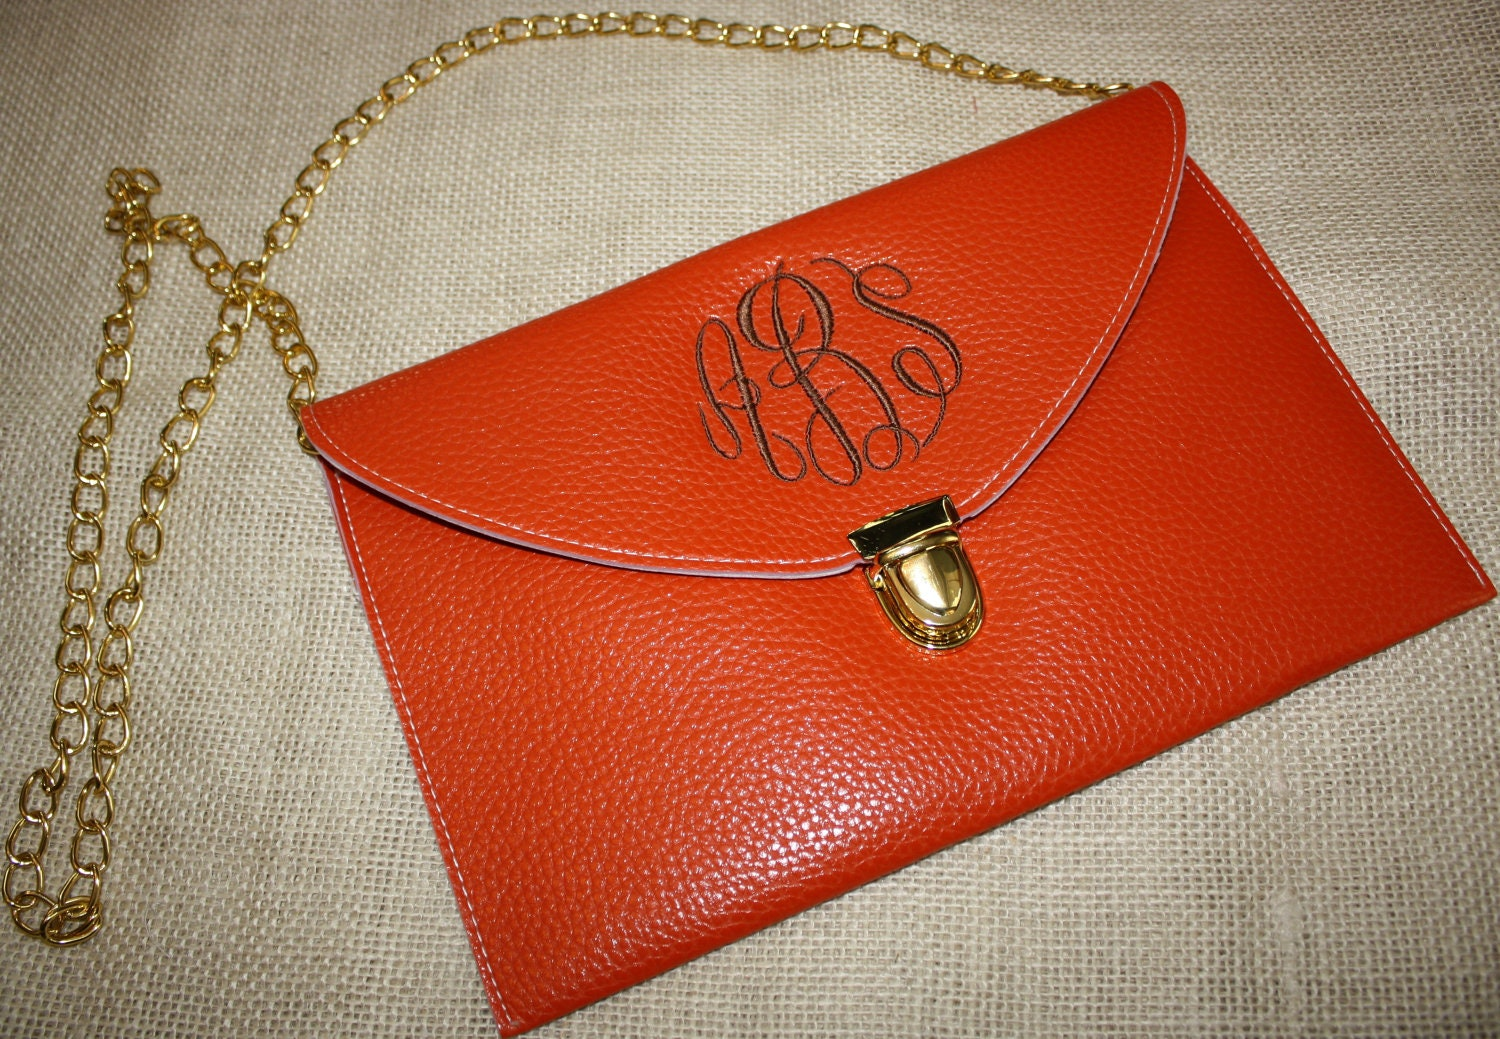 Monogrammed Women's Clutch Purse Crossbody